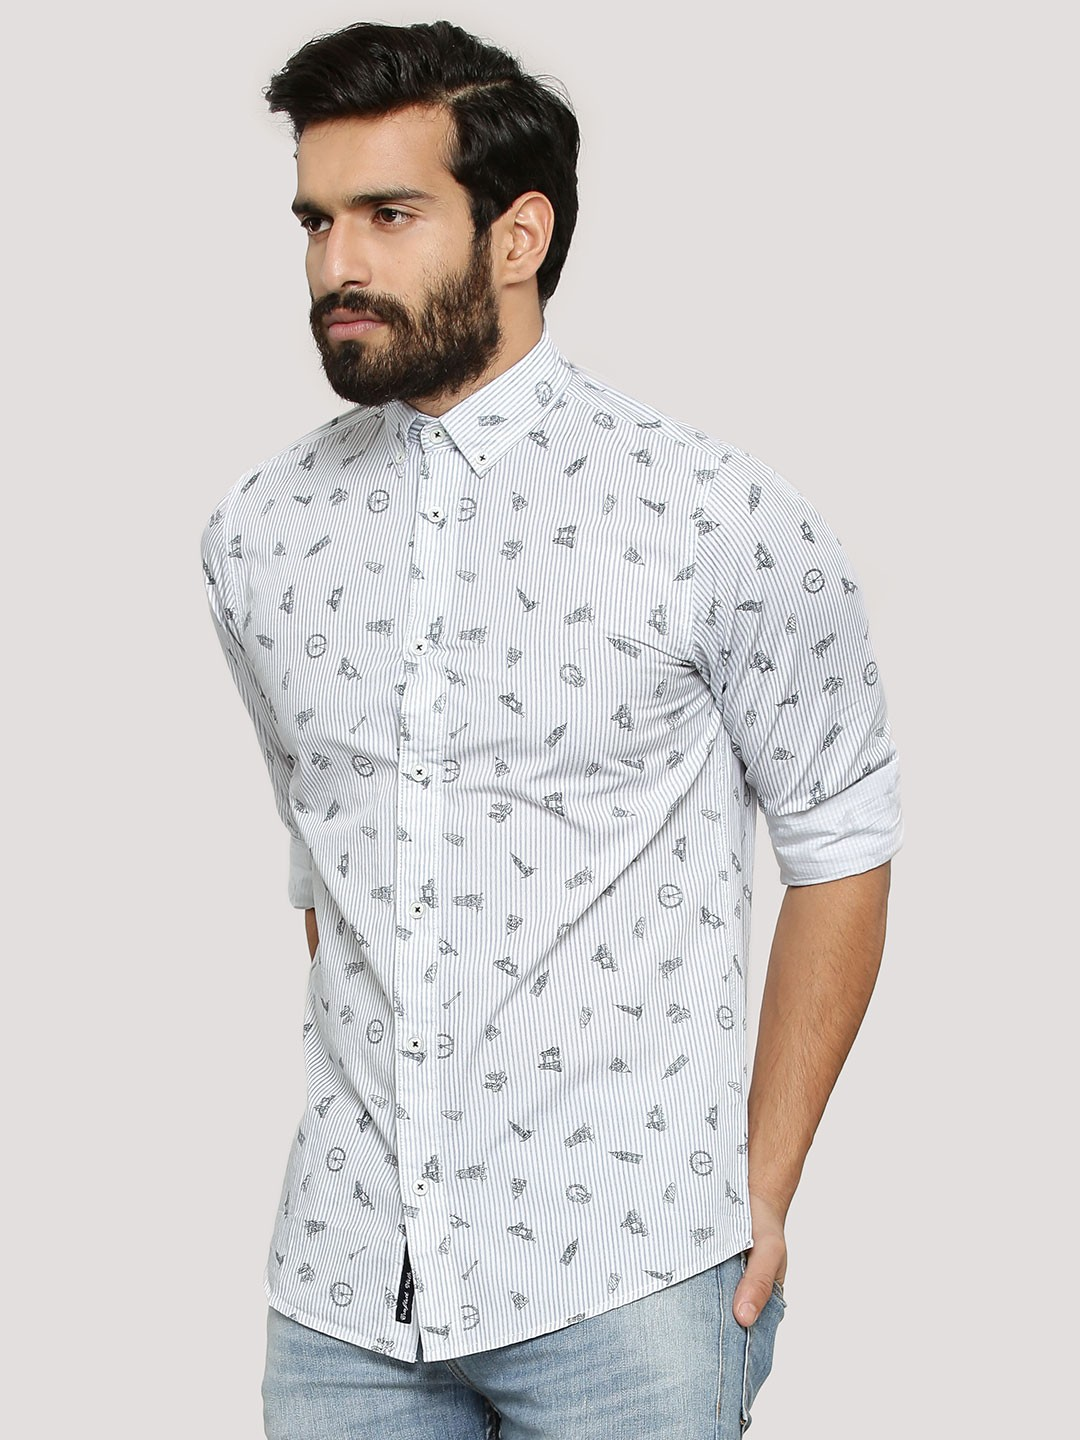 Buy PEPE JEANS Monument Printed Shirt For Men - Men's White Casual ...